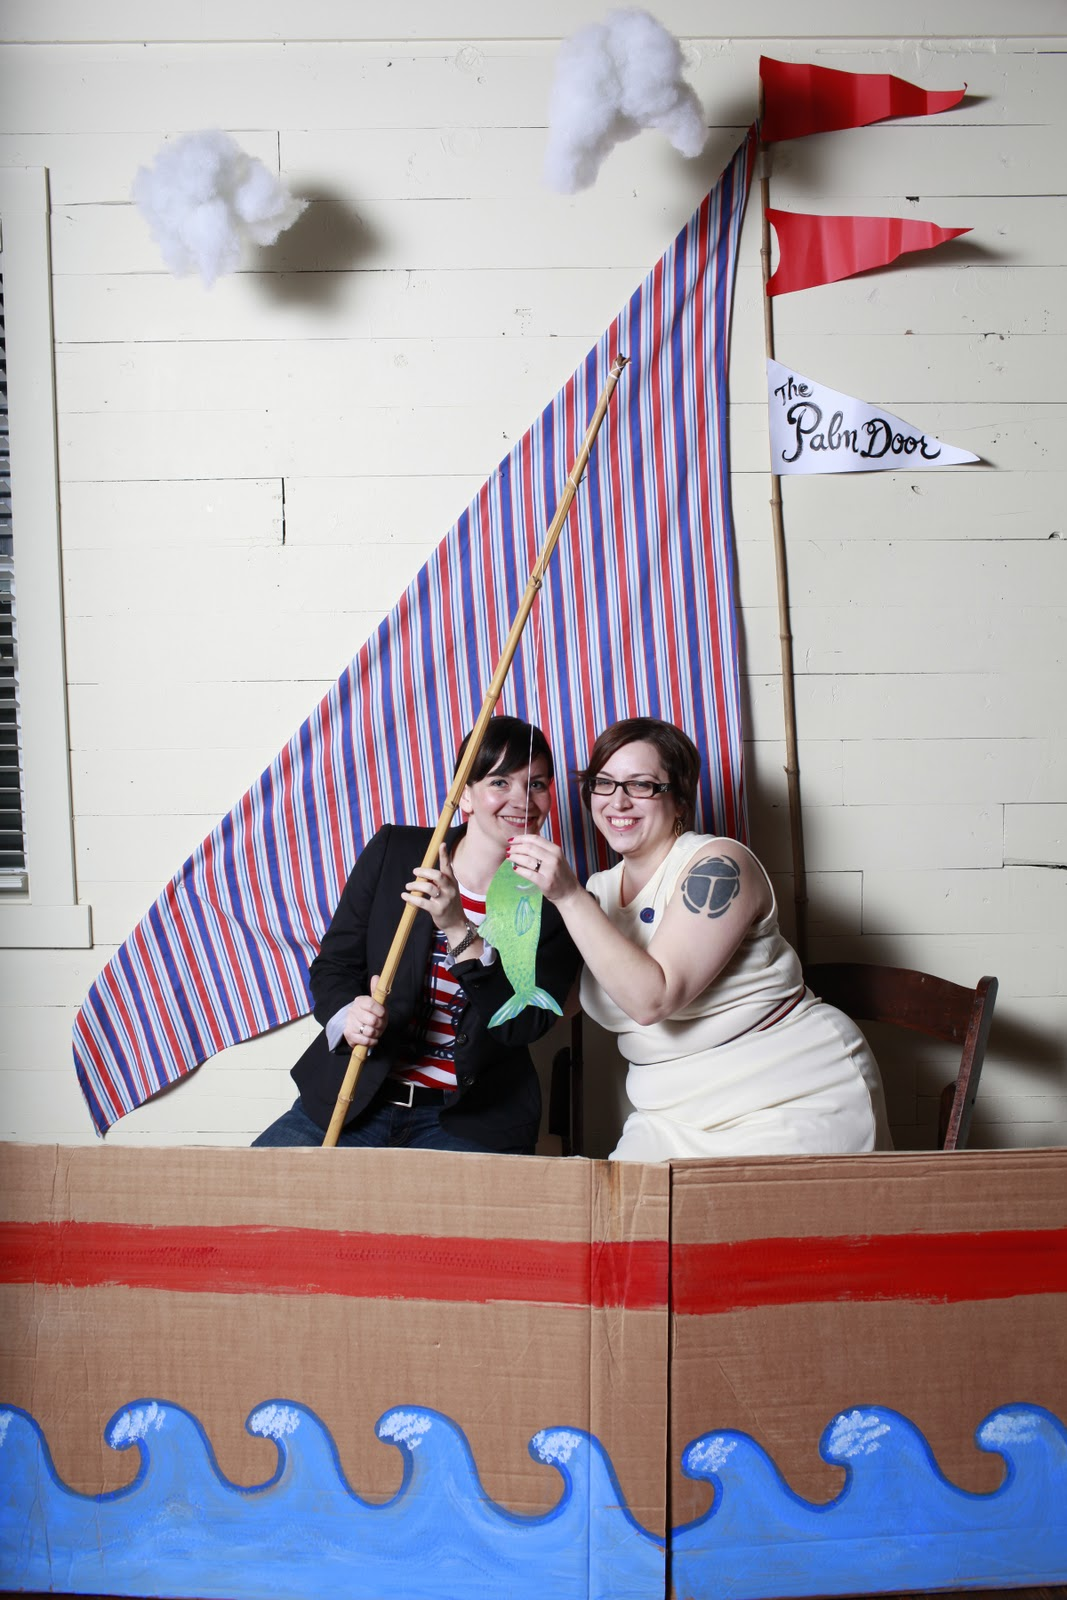 Palm Door Sail Boat Photo Booth